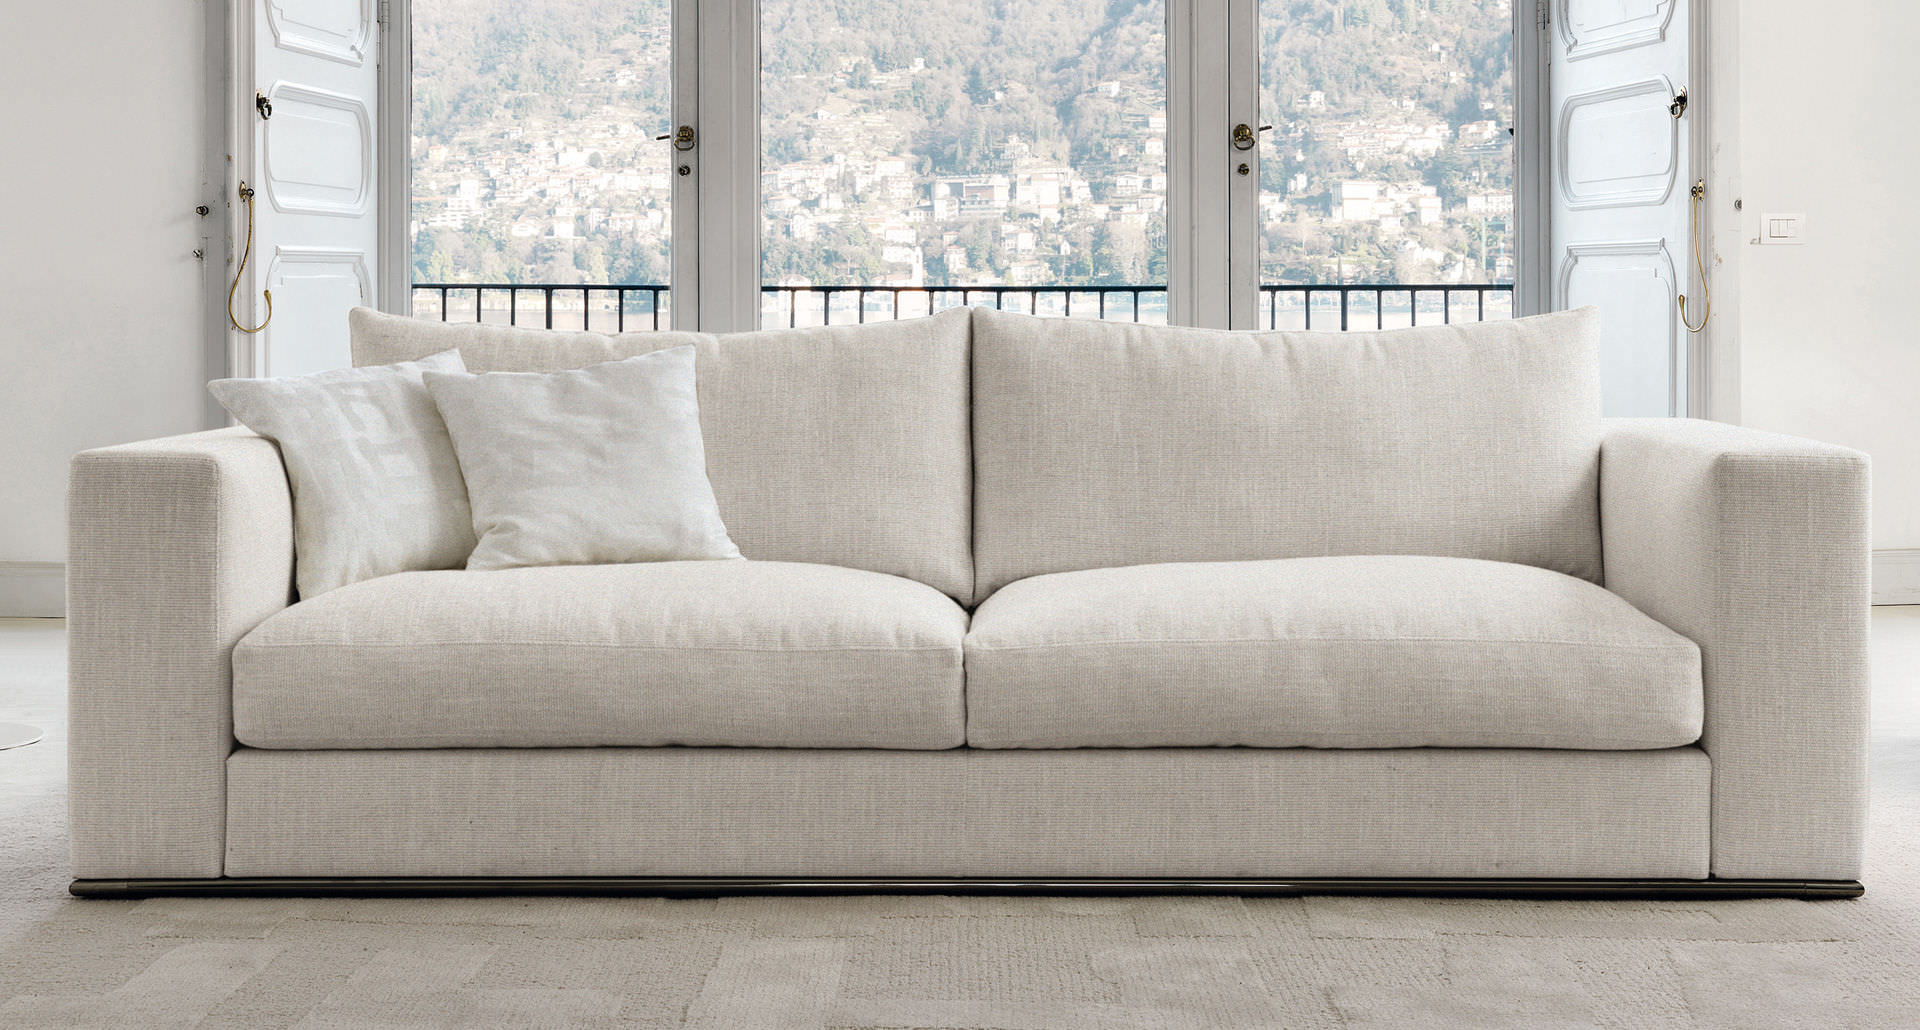 How to judge a sofa for quality etch bolts - Sofas para salones pequenos ...